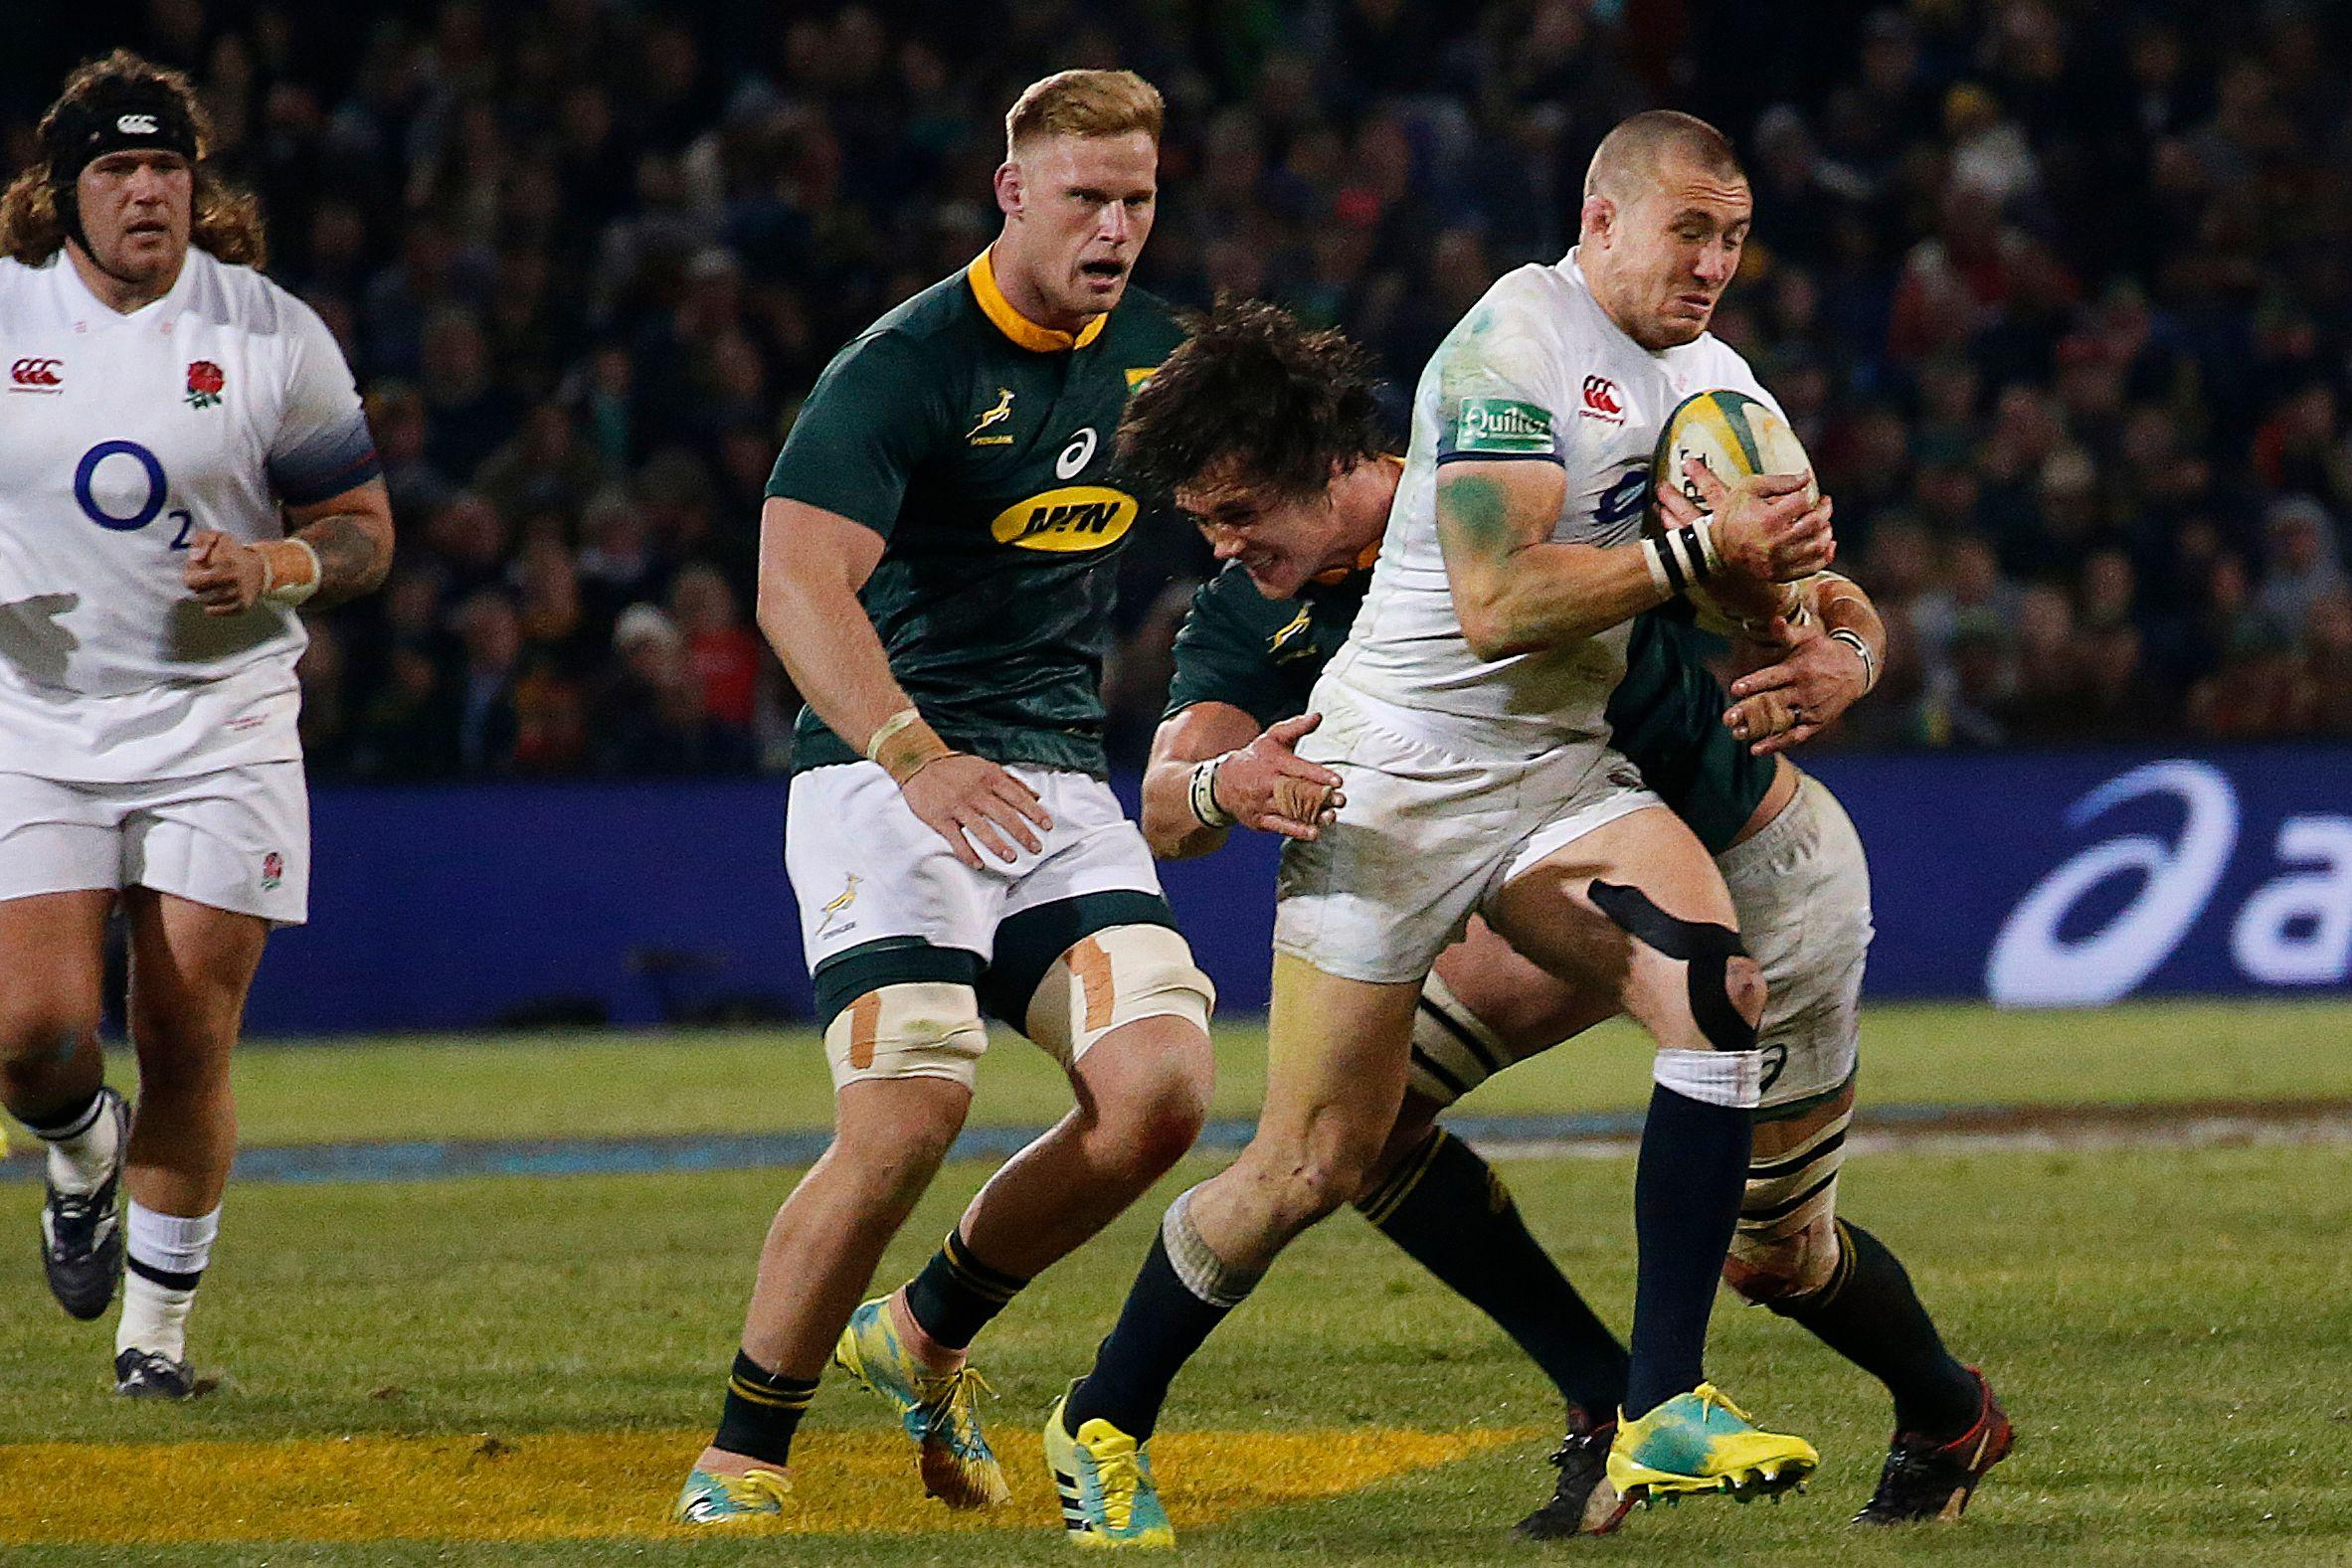 Mike Brown scored against the Springboks - but England threw away a 12 point lead as they sunk in Bloemfontein